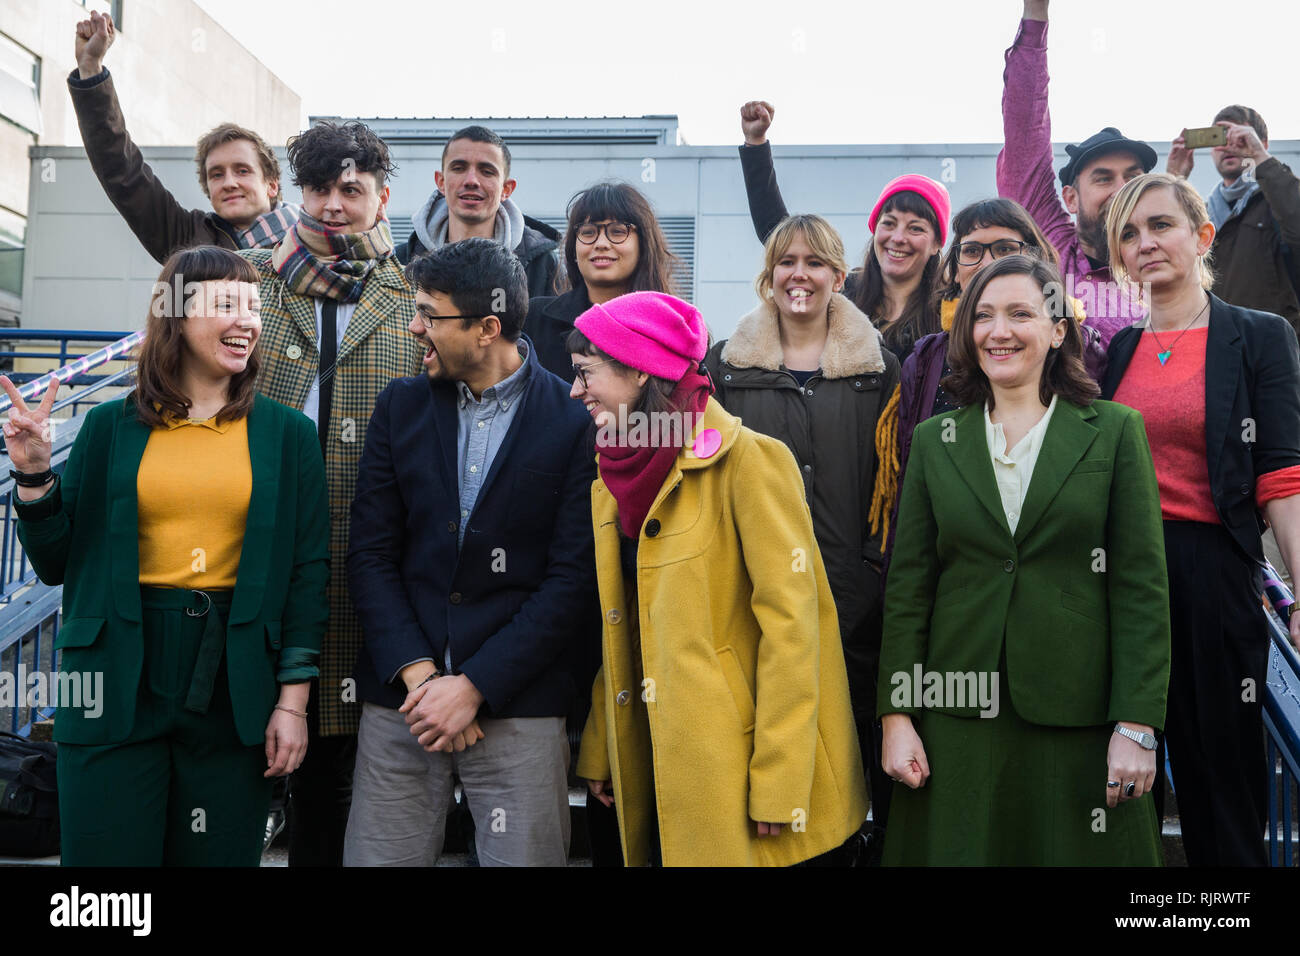 Chelmsford, UK. 6th February, 2019. The Stansted 15 stand outside Chelmsford Crown Court before sentencing. They were convicted on 10th December of an anti-terrorism offence under the Aviation and Maritime Security Act 1990 following non-violent direct action to try to prevent a Home Office deportation flight carrying precarious migrants to Nigeria, Ghana and Sierra Leone from taking off from Stansted airport in March 2017. Credit: Mark Kerrison/Alamy Live News Stock Photo